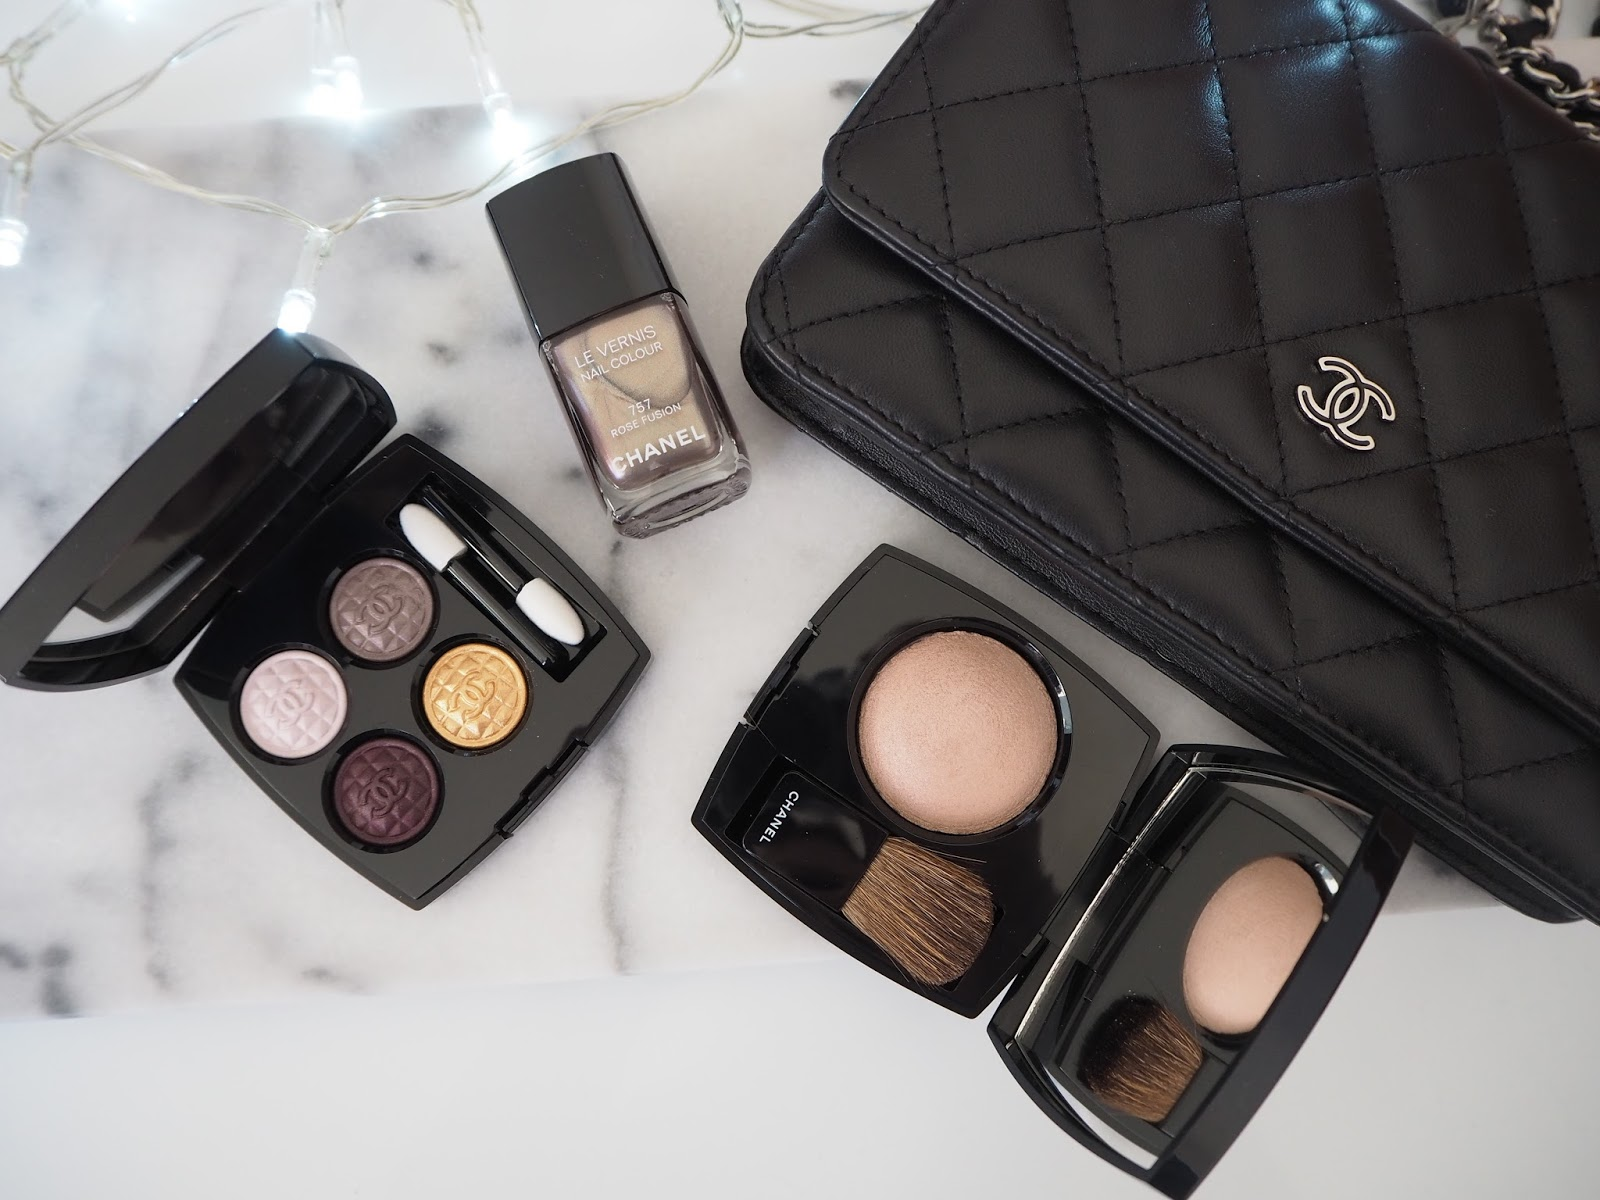 Chanel Holiday 2015 collection